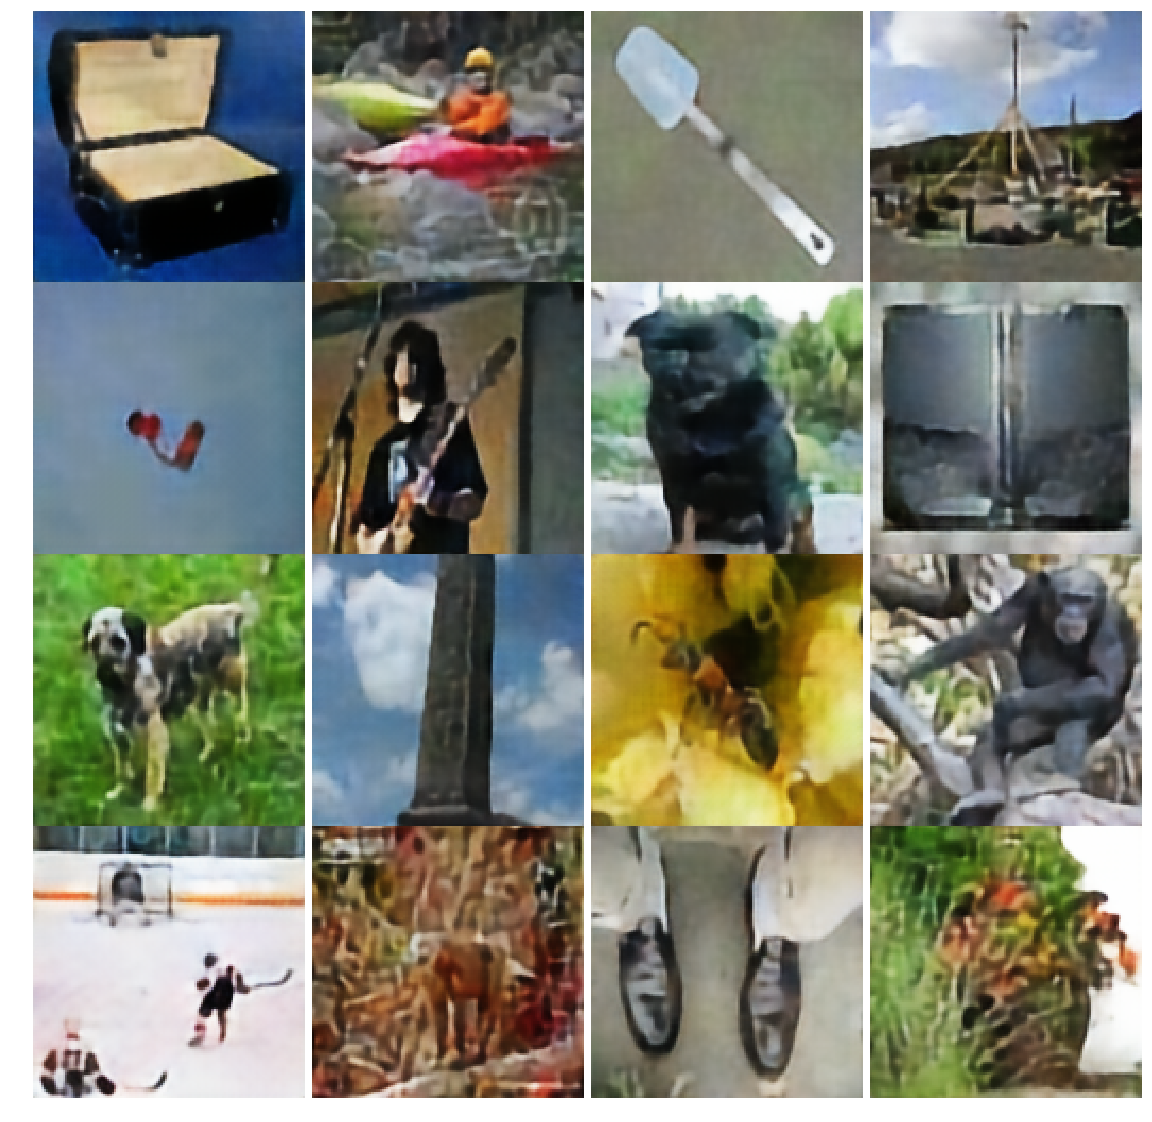 Imagenet Reconstructed Images